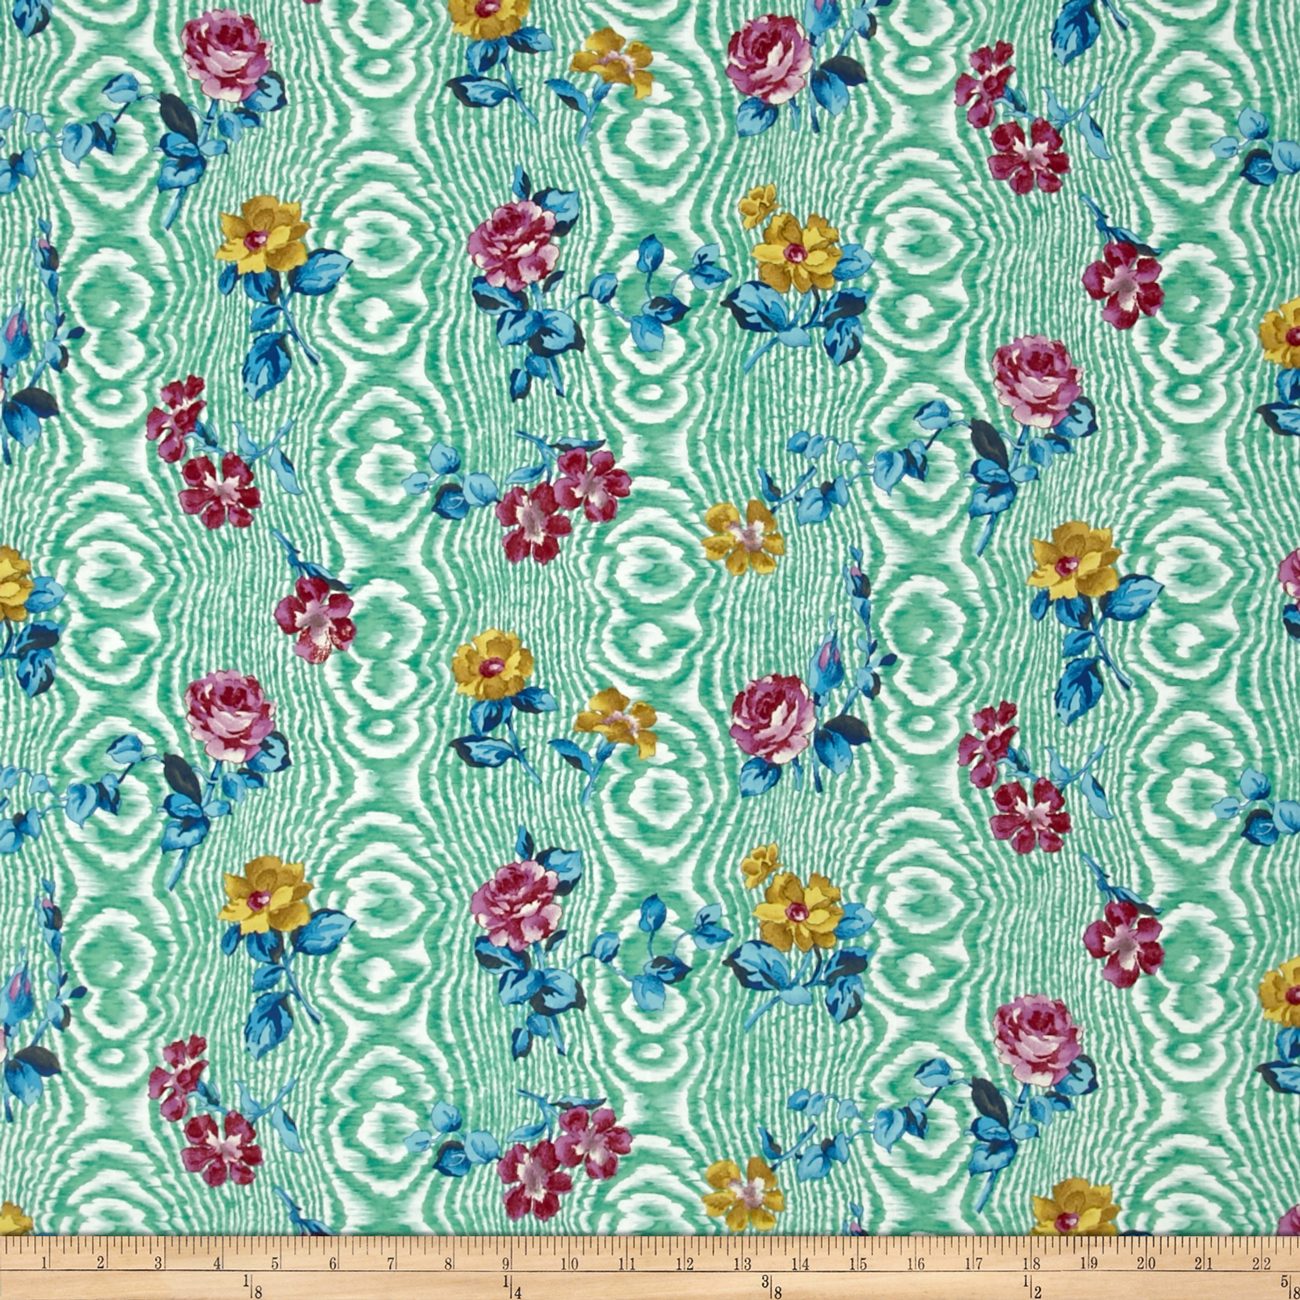 Tracy Porter Ardienne Tossed Floral Green Fabric by Clothworks in USA